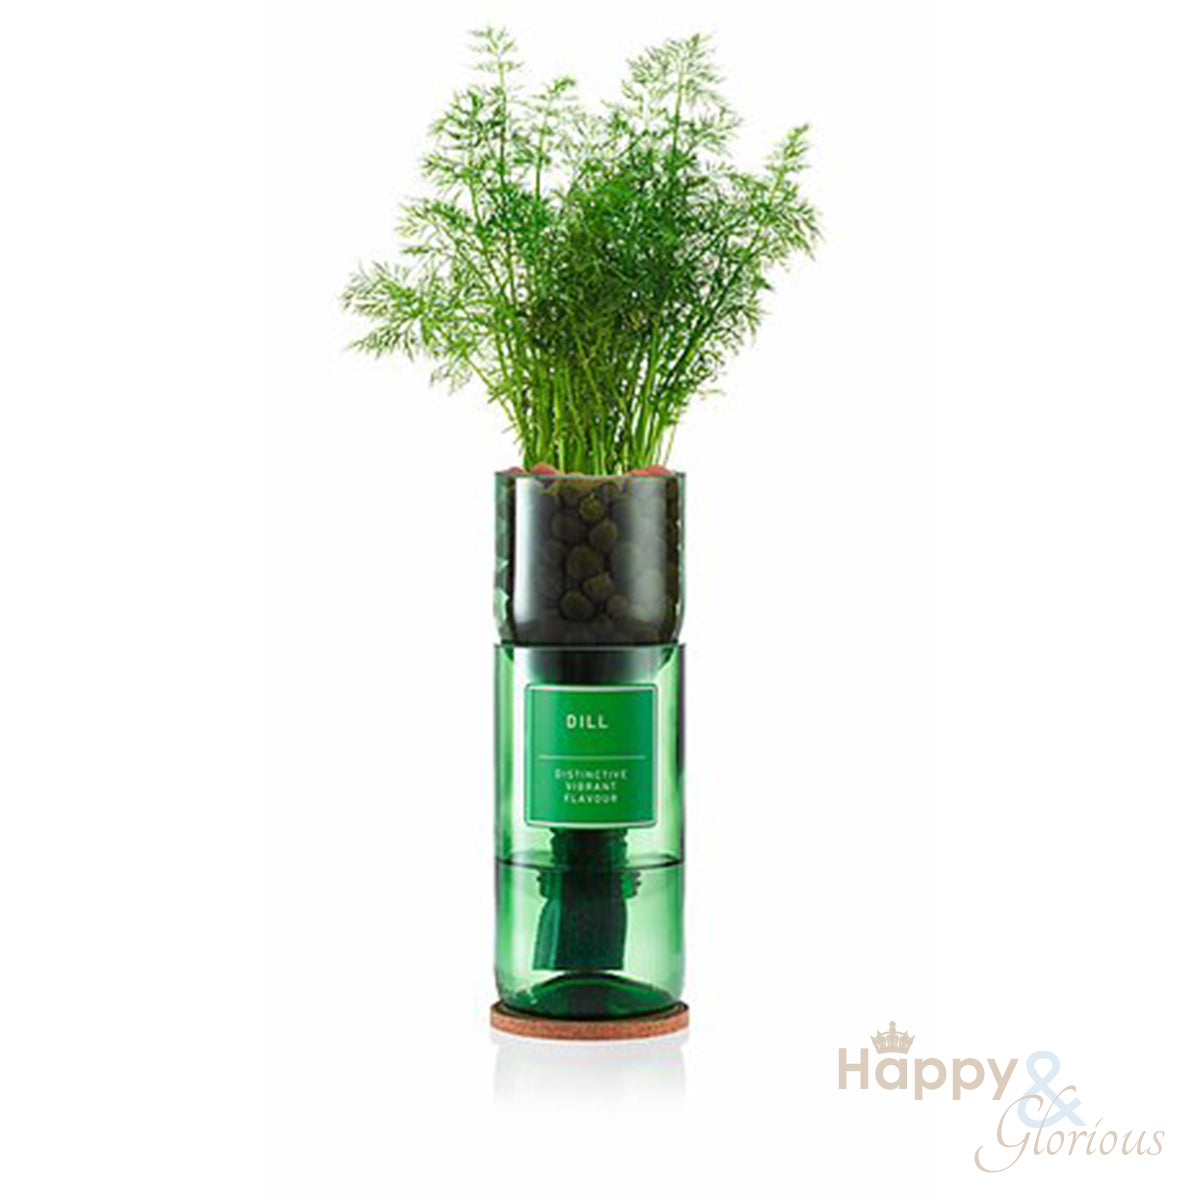 Dill hydroponic organic herb growing kit